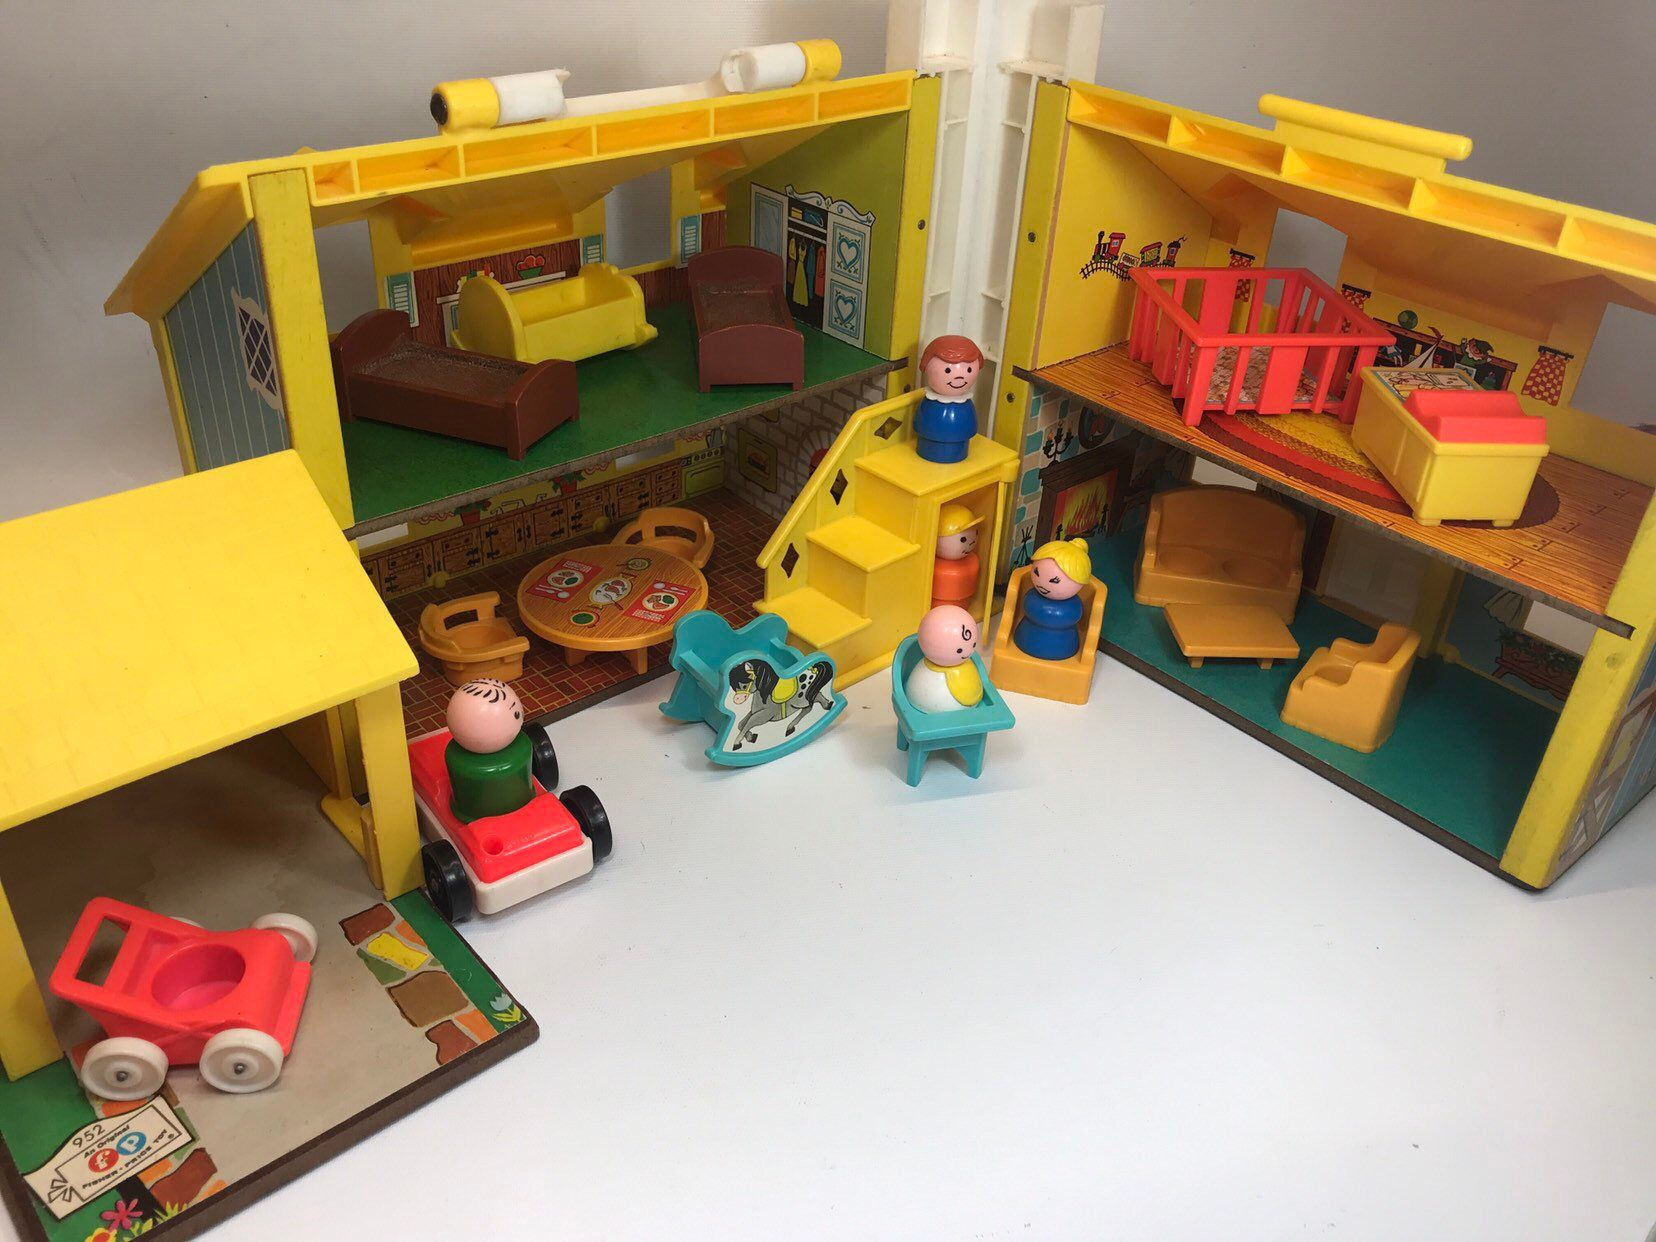 Pin by lori fahrbach on toys in 2020 (With images) Retro